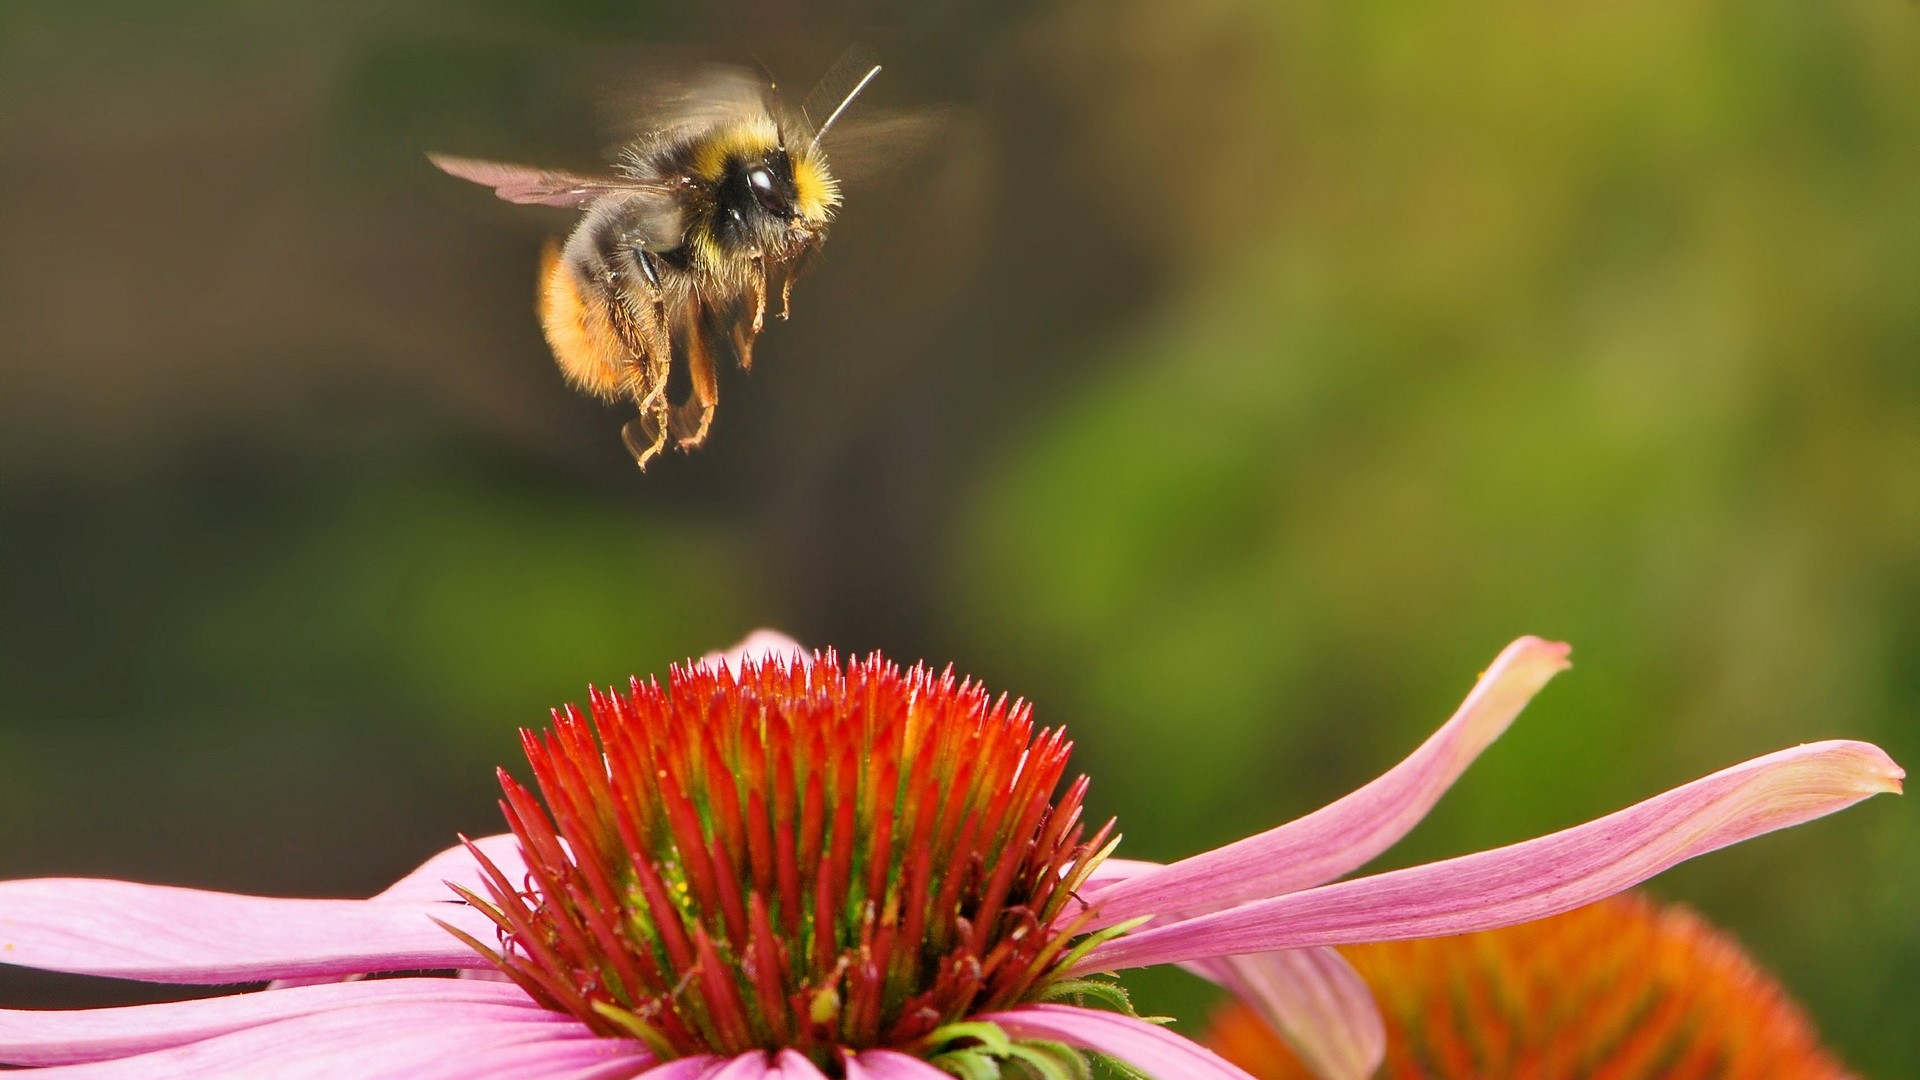 Attract Bees - Attract bumble bees - Early Bumblebee